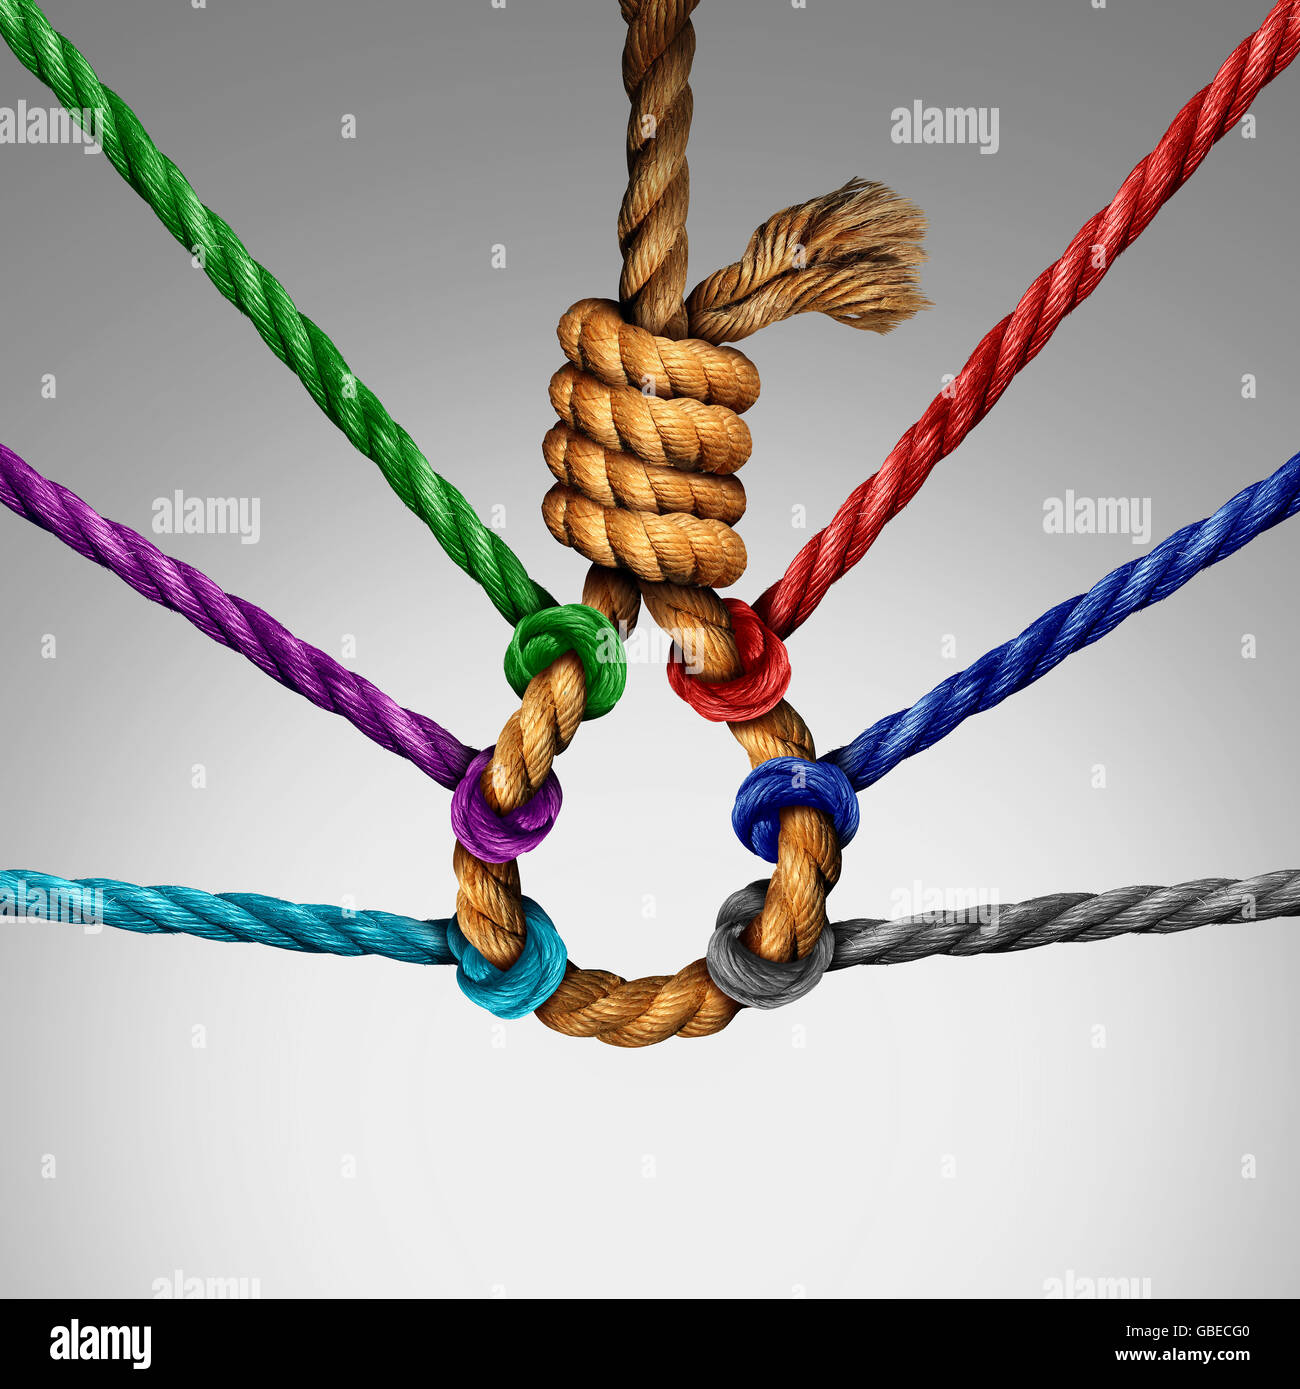 Suicide prevention support and group intervention symbol as a rope shaped in a suicidal noose with a group of diverse - Stock Image